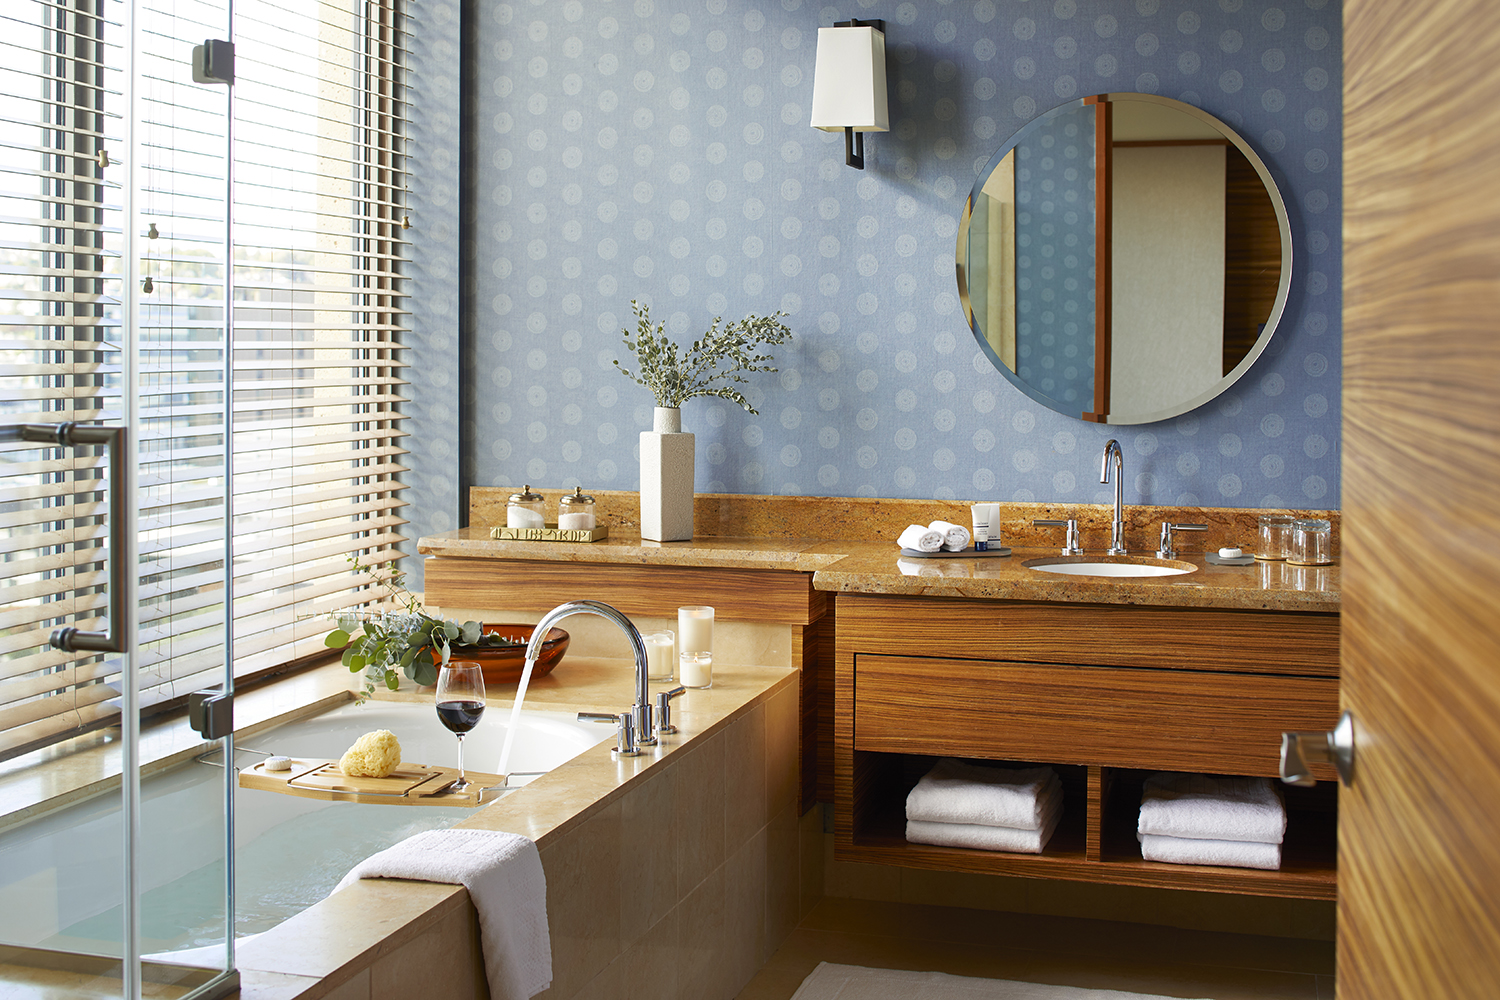 Pan Pacific Seattle launched an in-room bath bar stocked with local, sustainable beauty products such as  Follian  soaps and scrubs for the oversized soaking tubs.